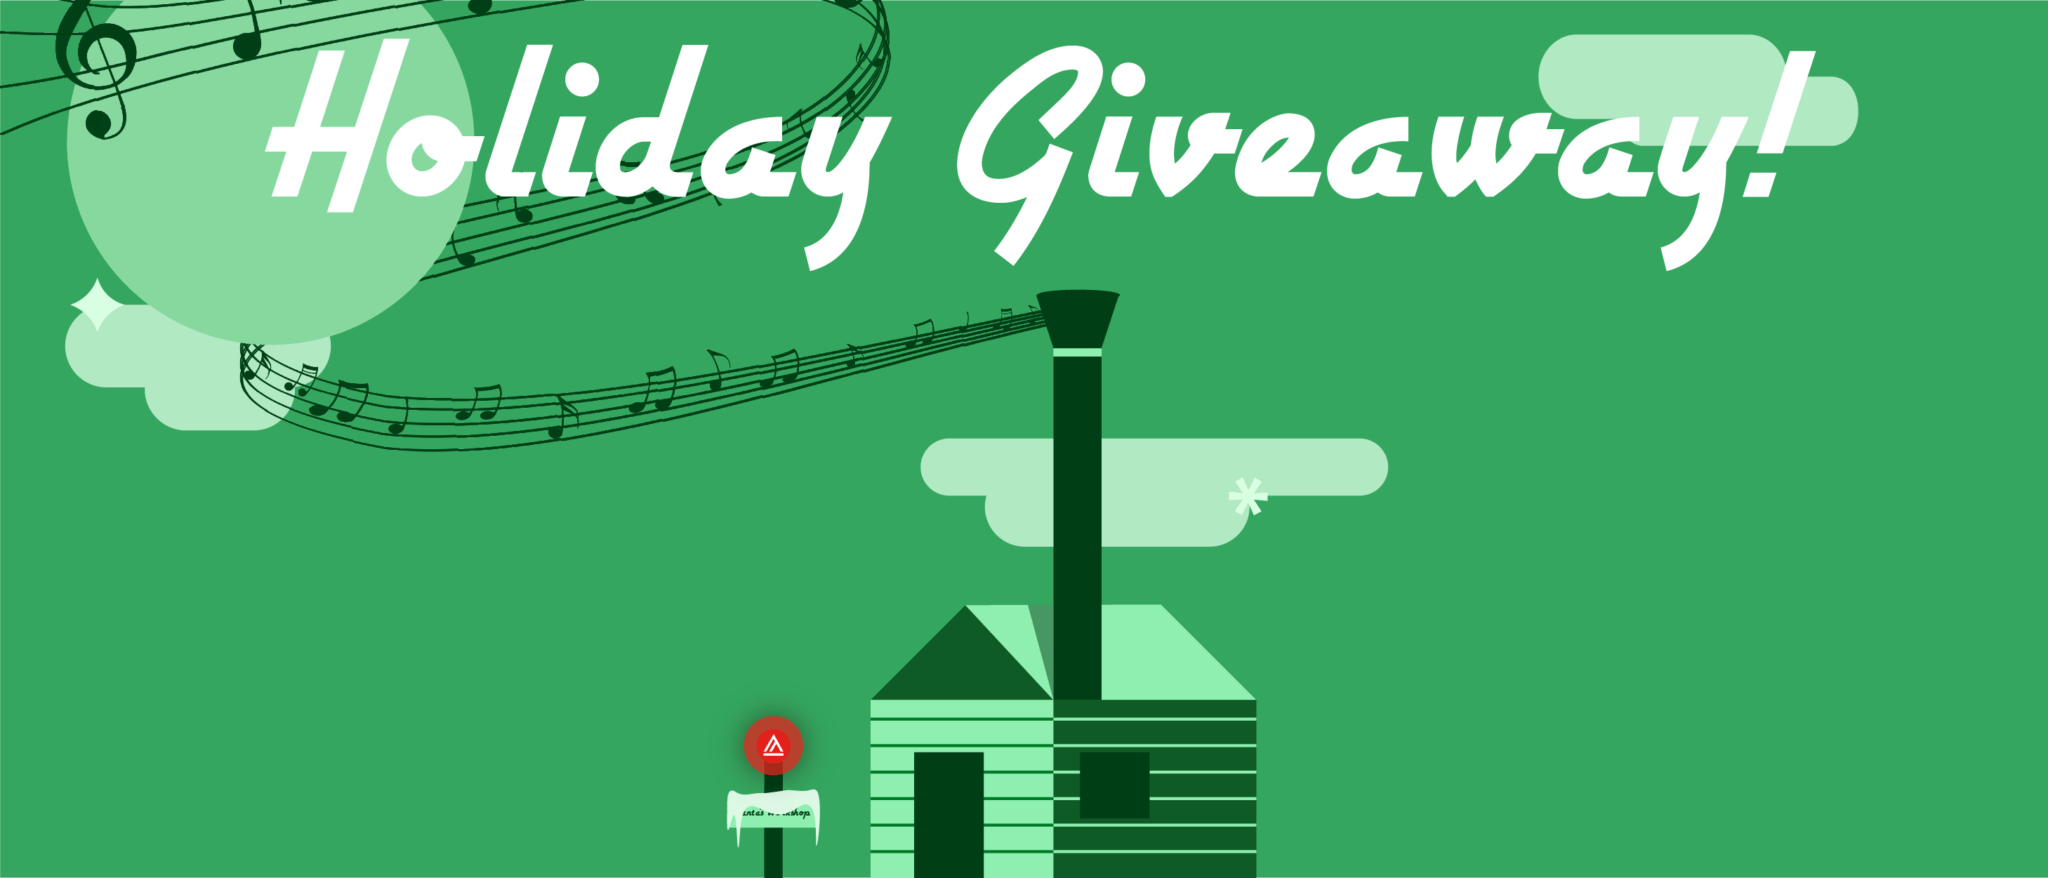 ArtU Holiday Giveaway - Twitter